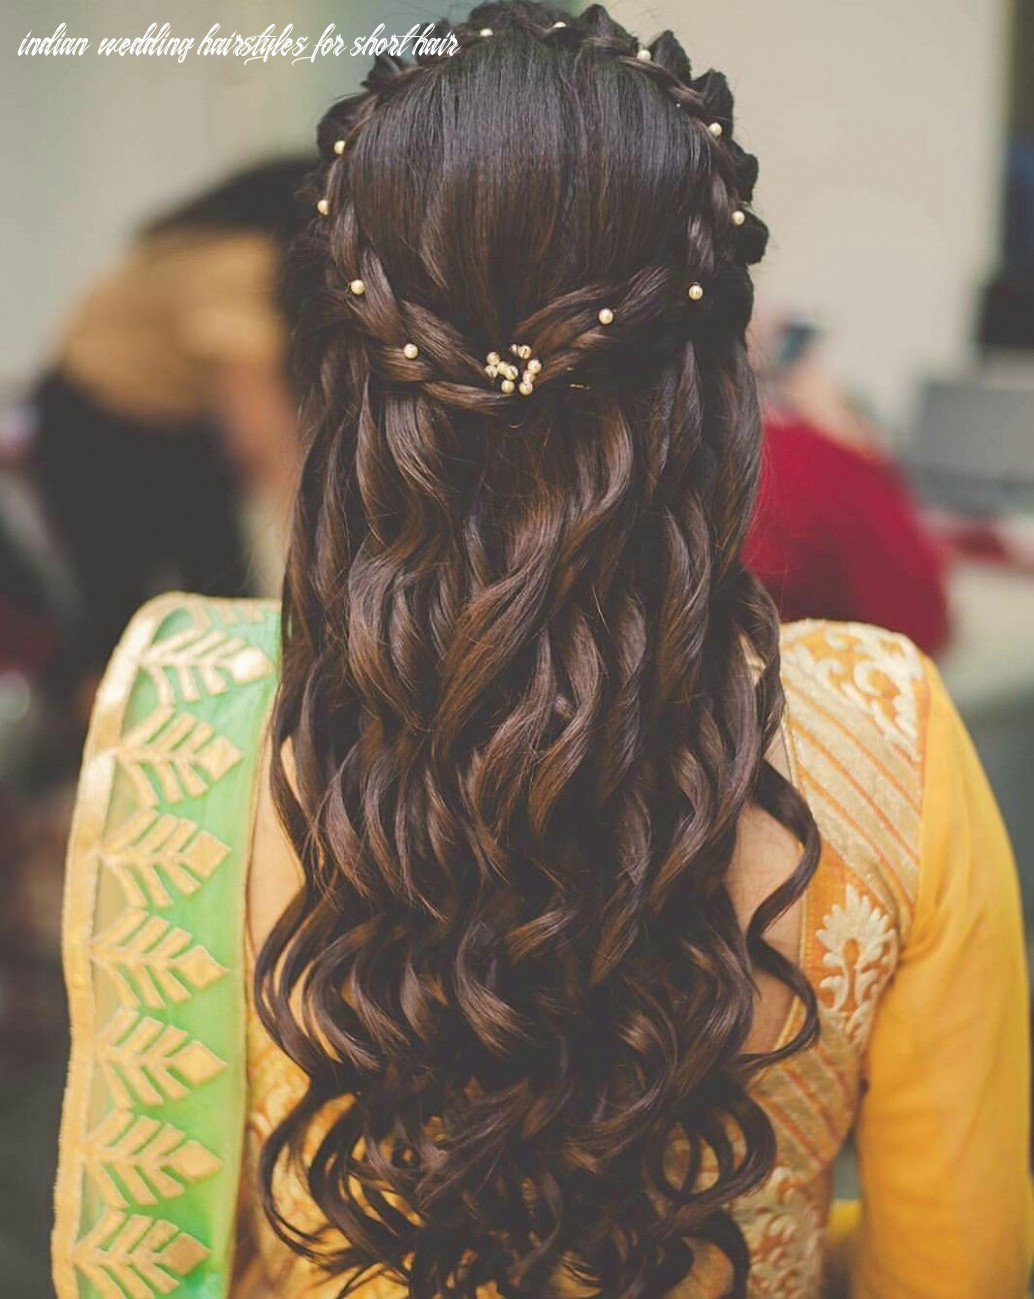 Hairstyle for short hair | engagement hairstyles, indian wedding